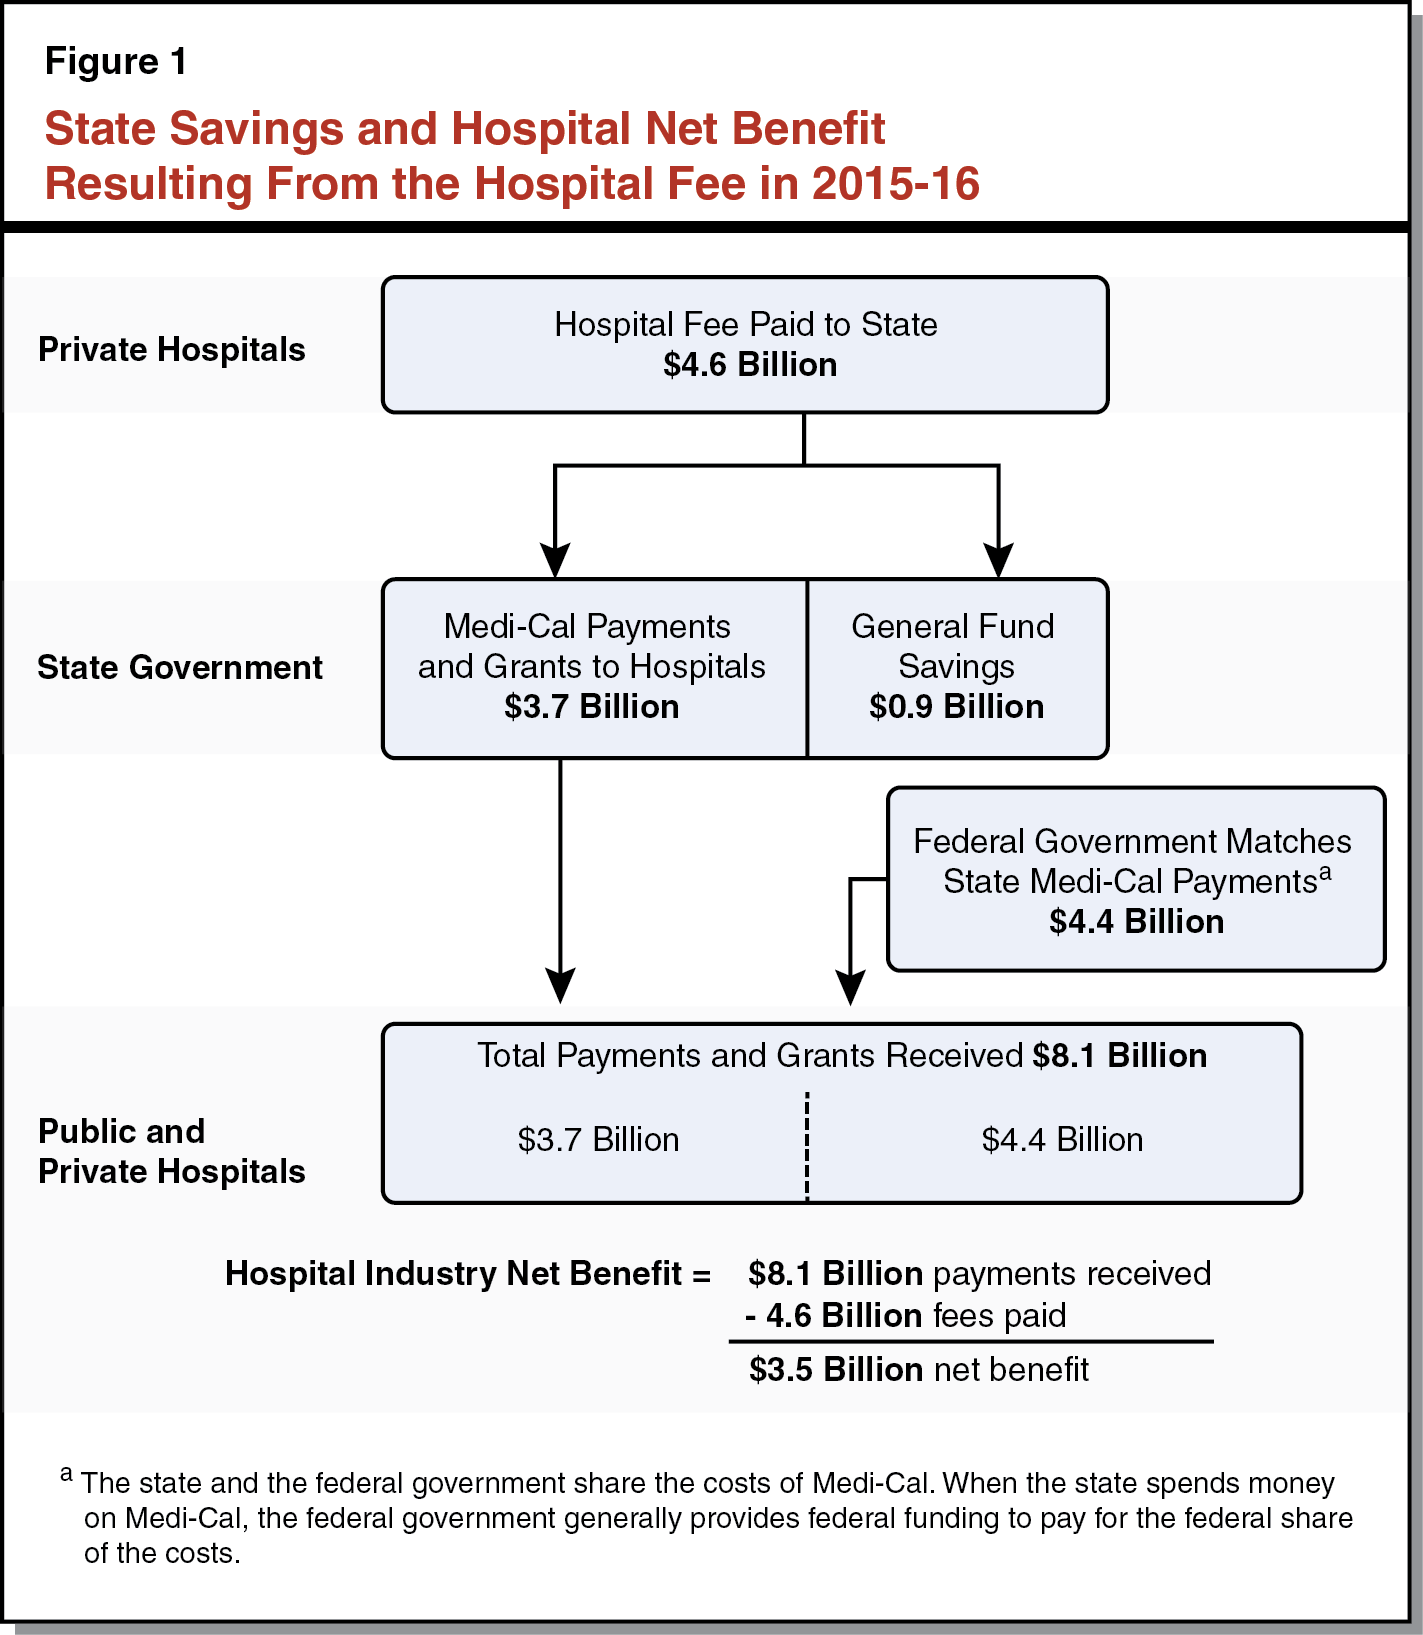 Figure 1 - State Savings and Hospital Net Benefit Resulting From the Hospital Fee in 2015-16